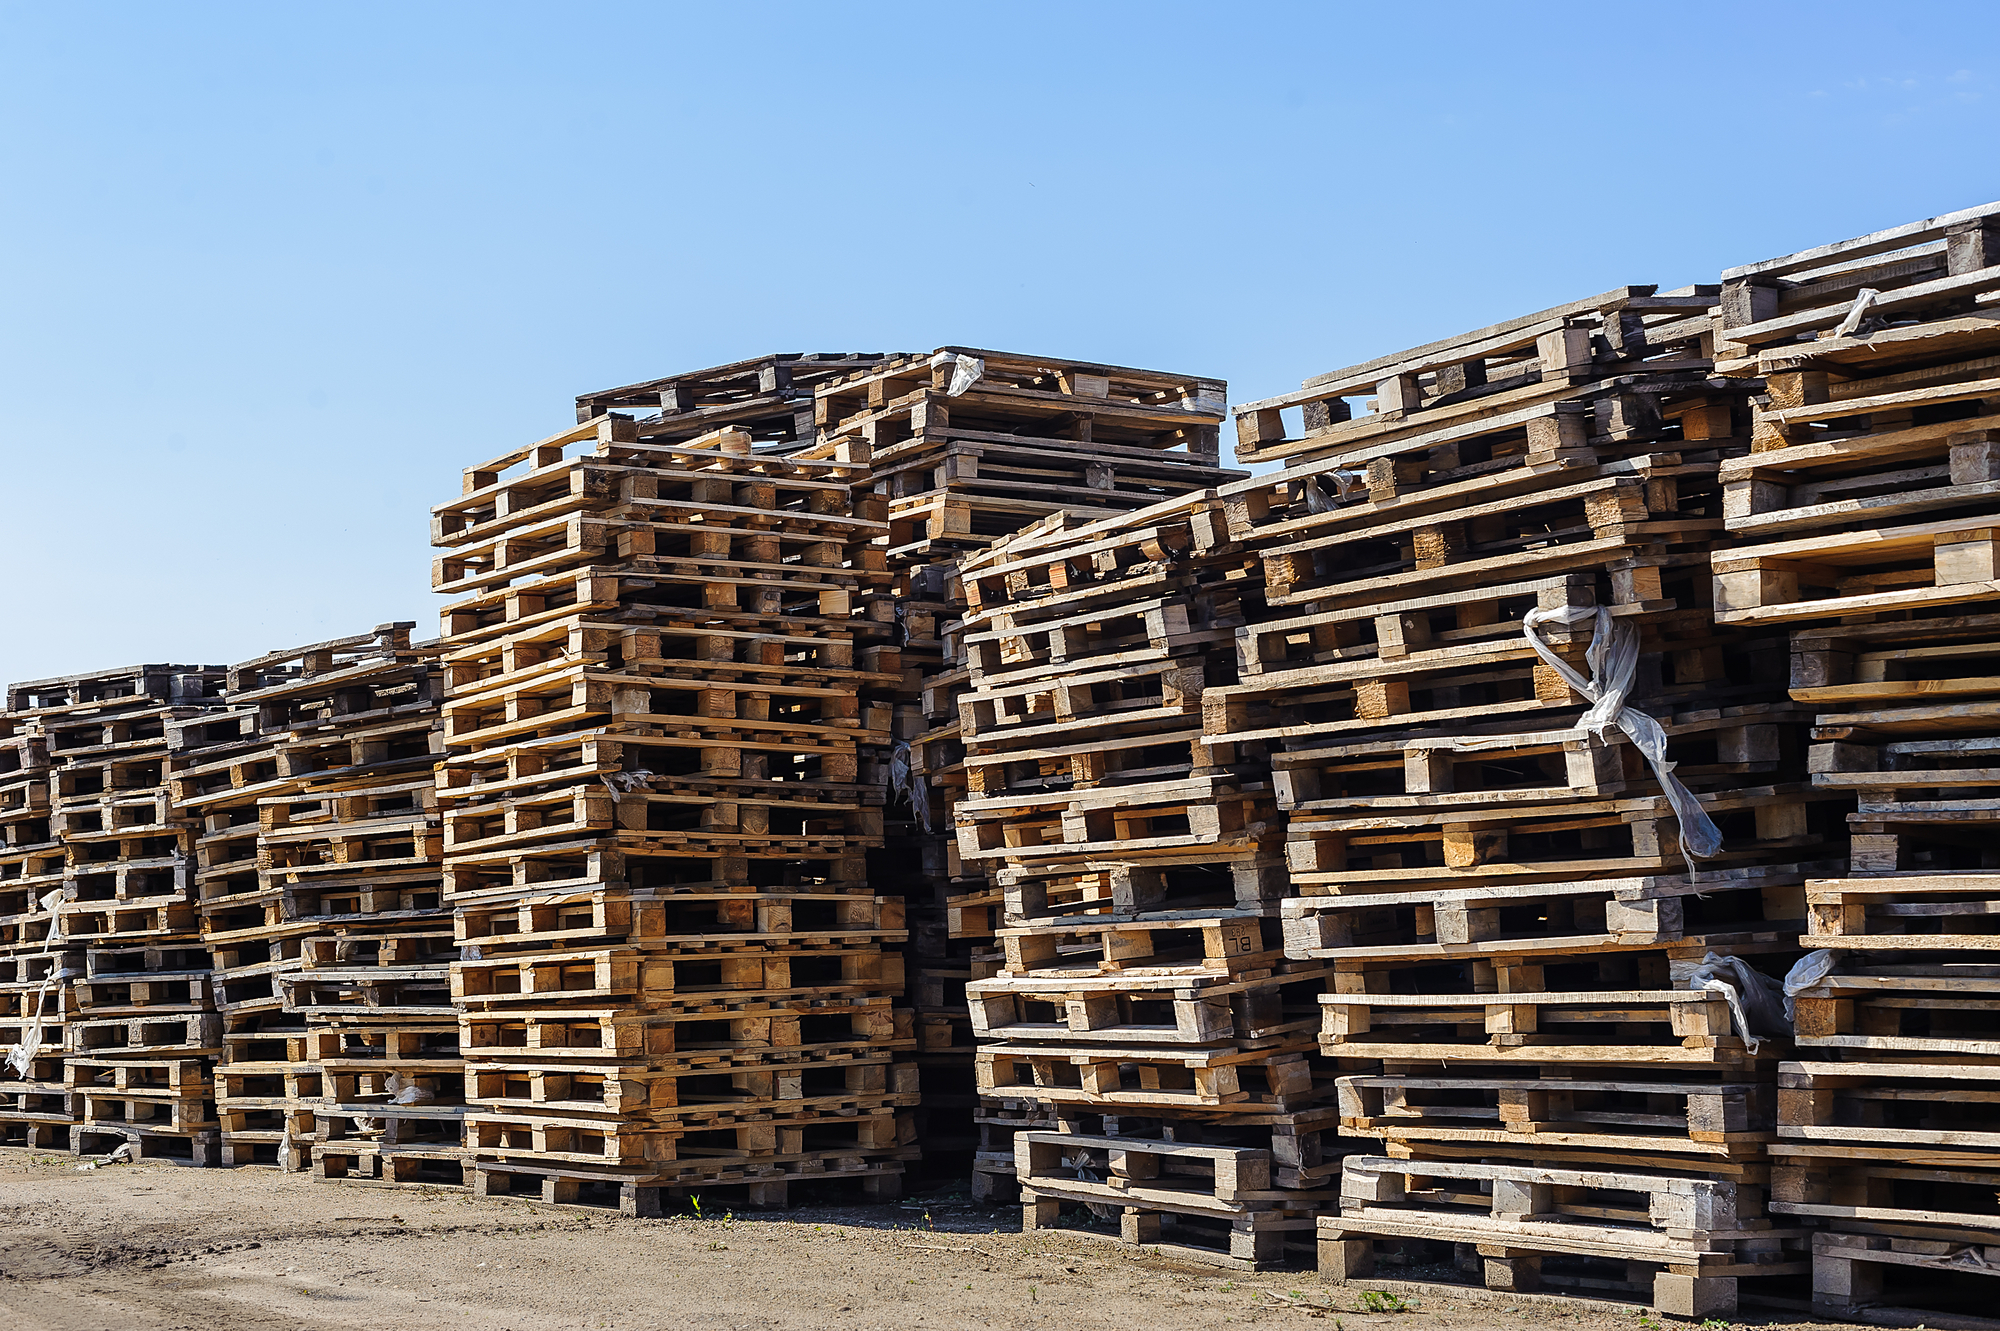 stack of old pallets in need of pallet removal services.